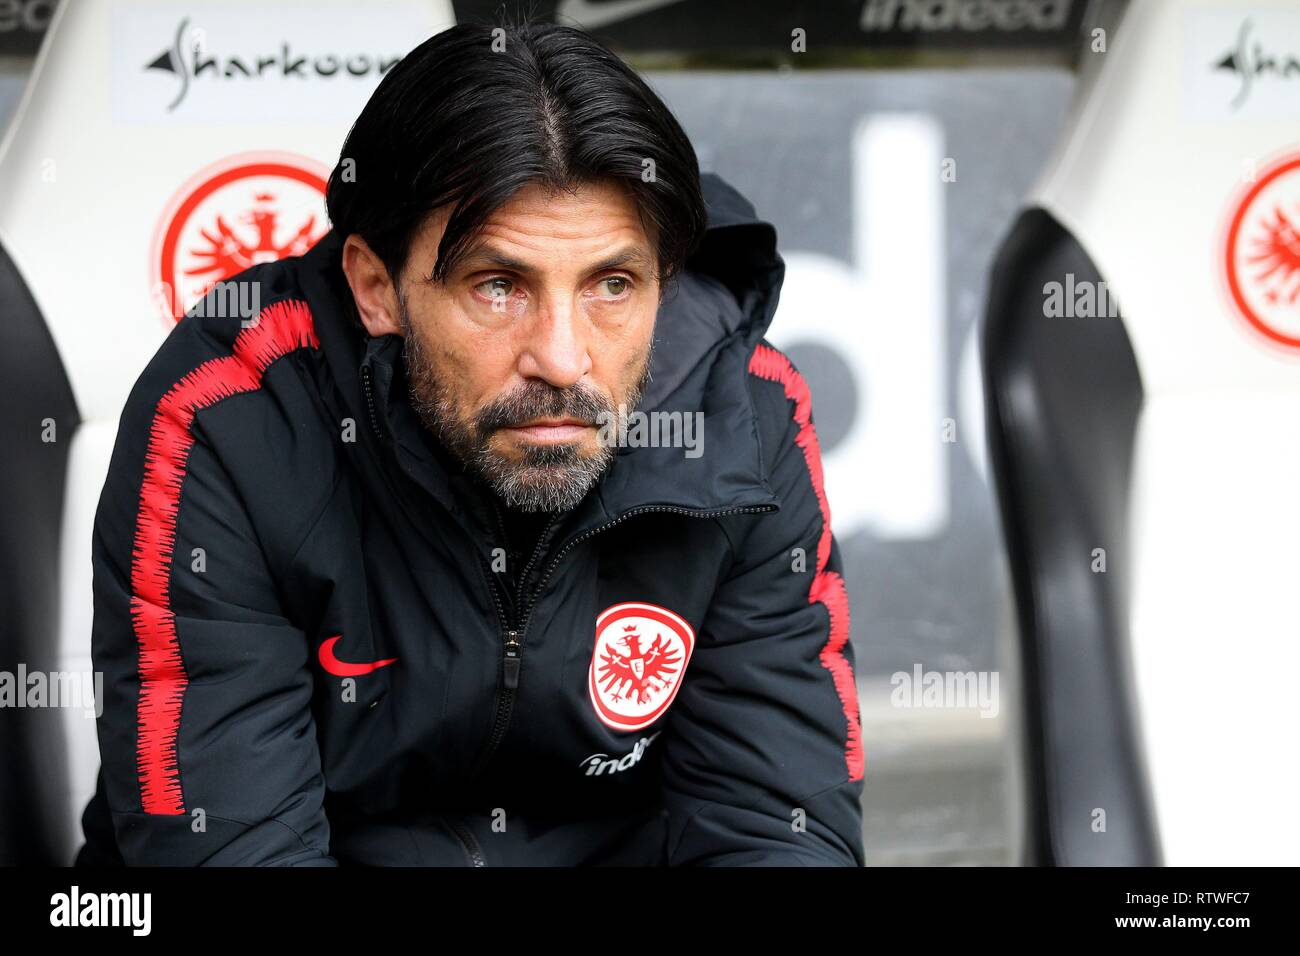 Frankfurt, Deutschland. 02nd Mar, 2019. firo: 02.03.2019, football, 1.Bundesliga, season 2018/2019, Eintracht Frankfurt - TSG 1899 Hoffenheim, portrait, facial expressions, half figure, | usage worldwide Credit: dpa/Alamy Live News Stock Photo